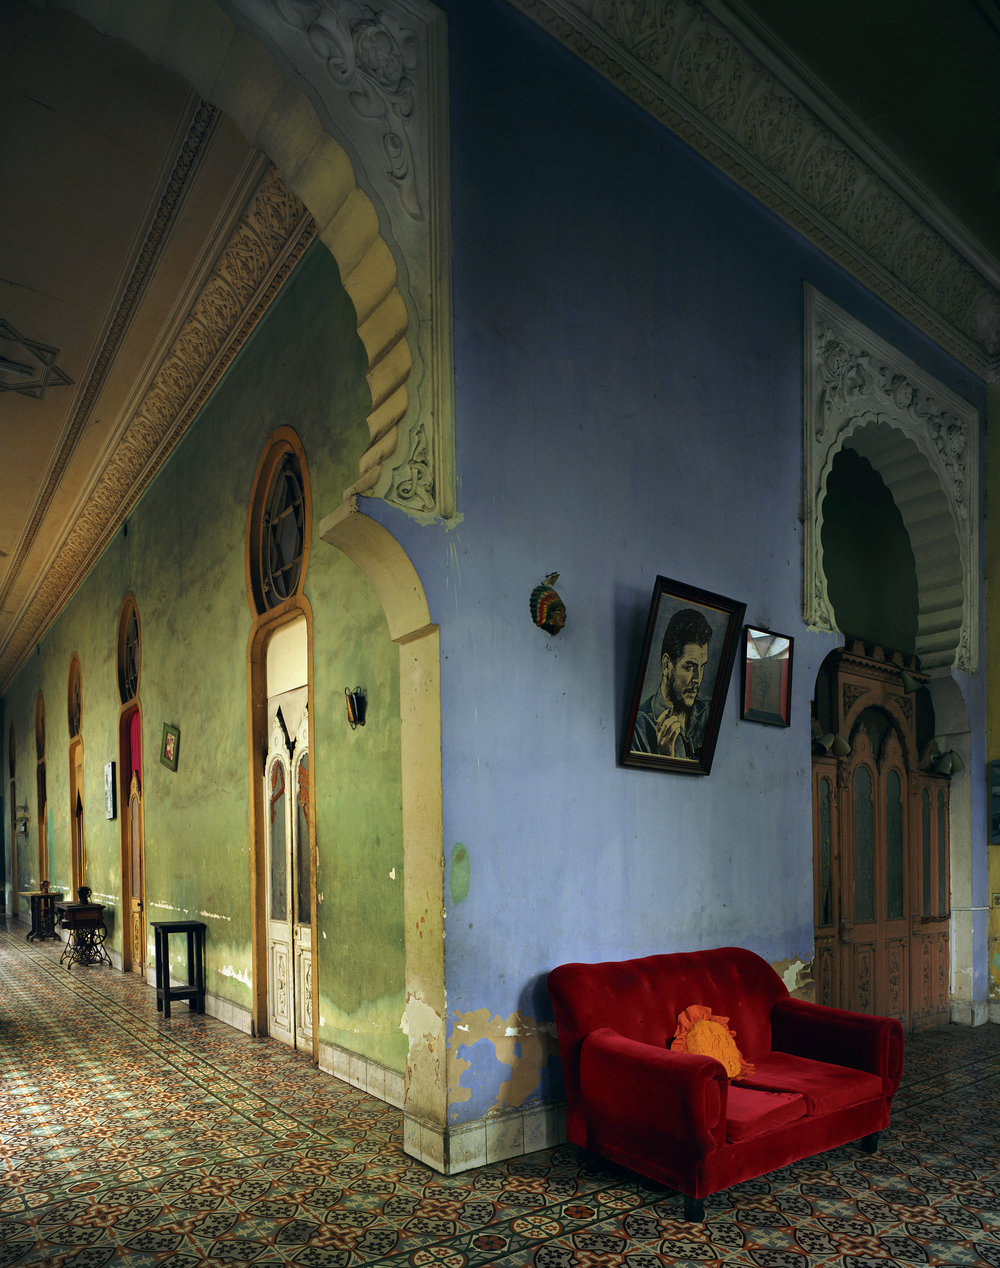 Red Couch, Havana 2010, Digital C-print 90 3/8 x 73 in.